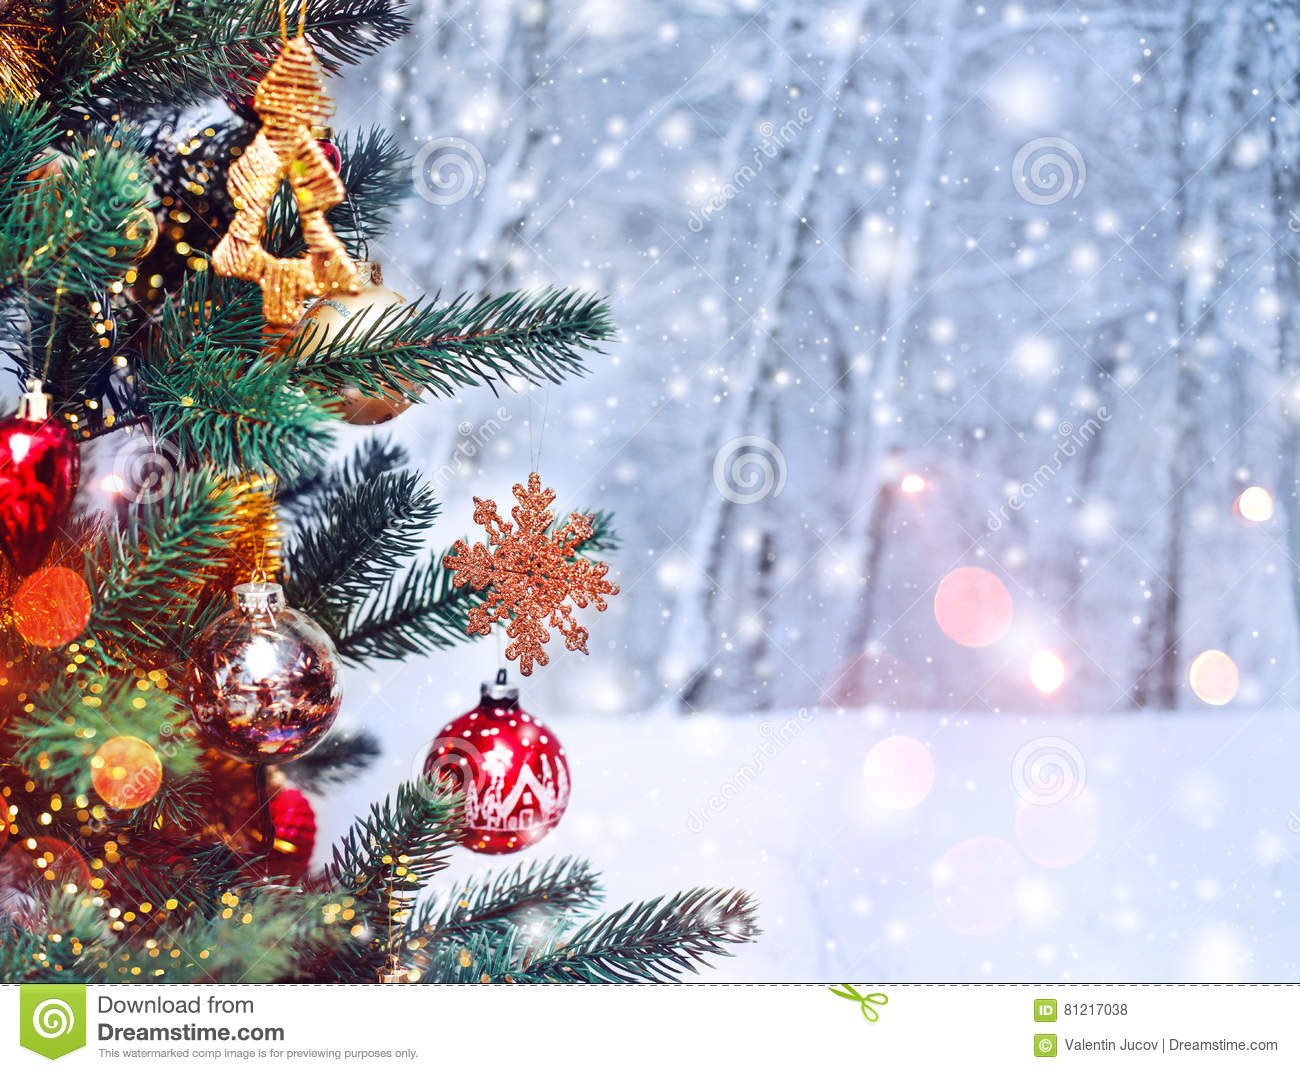 Christmas tree background and Christmas decorations with snow, blurred, sparking, glowing. Happy New Year and Xmas